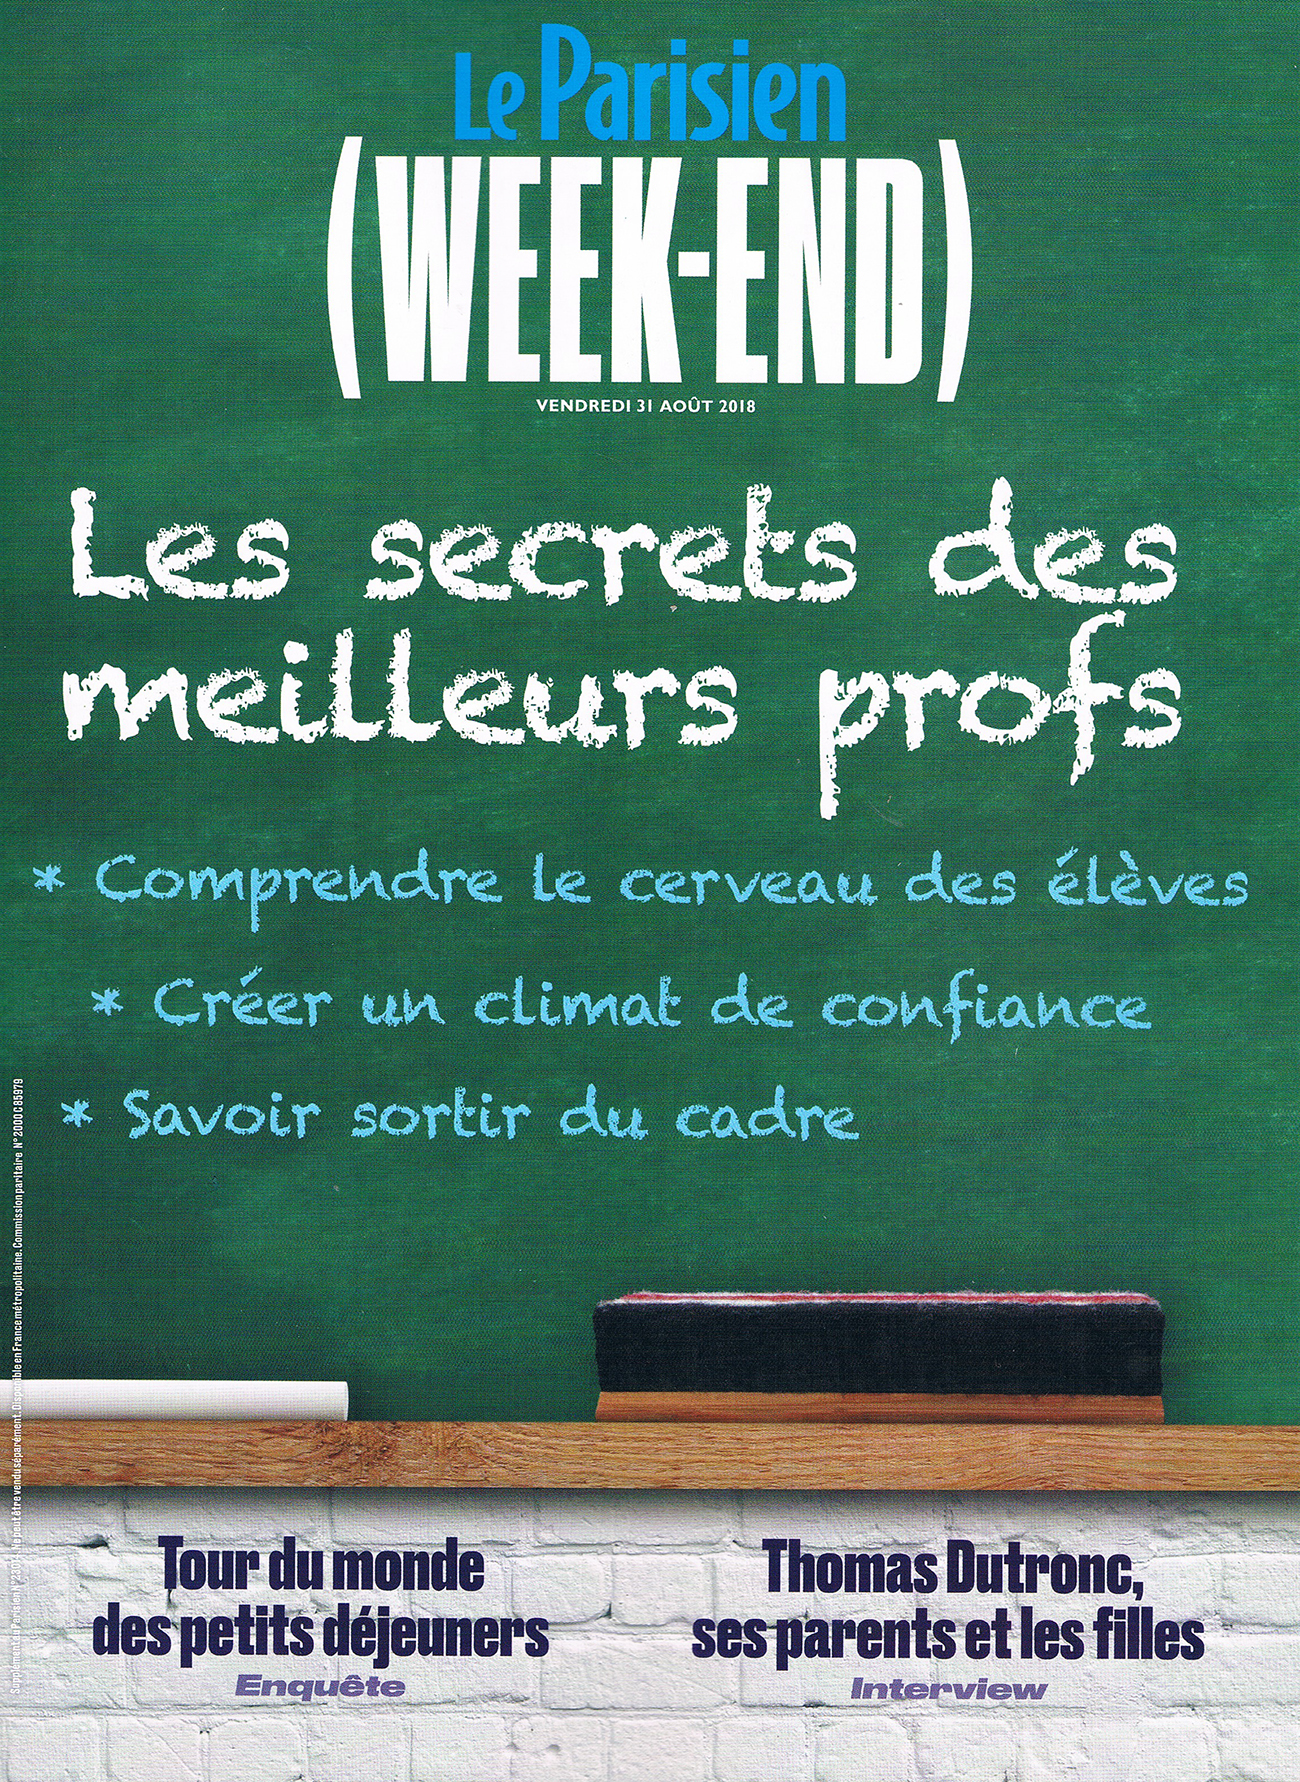 LE PARISIEN WEEK-END AOUT 18